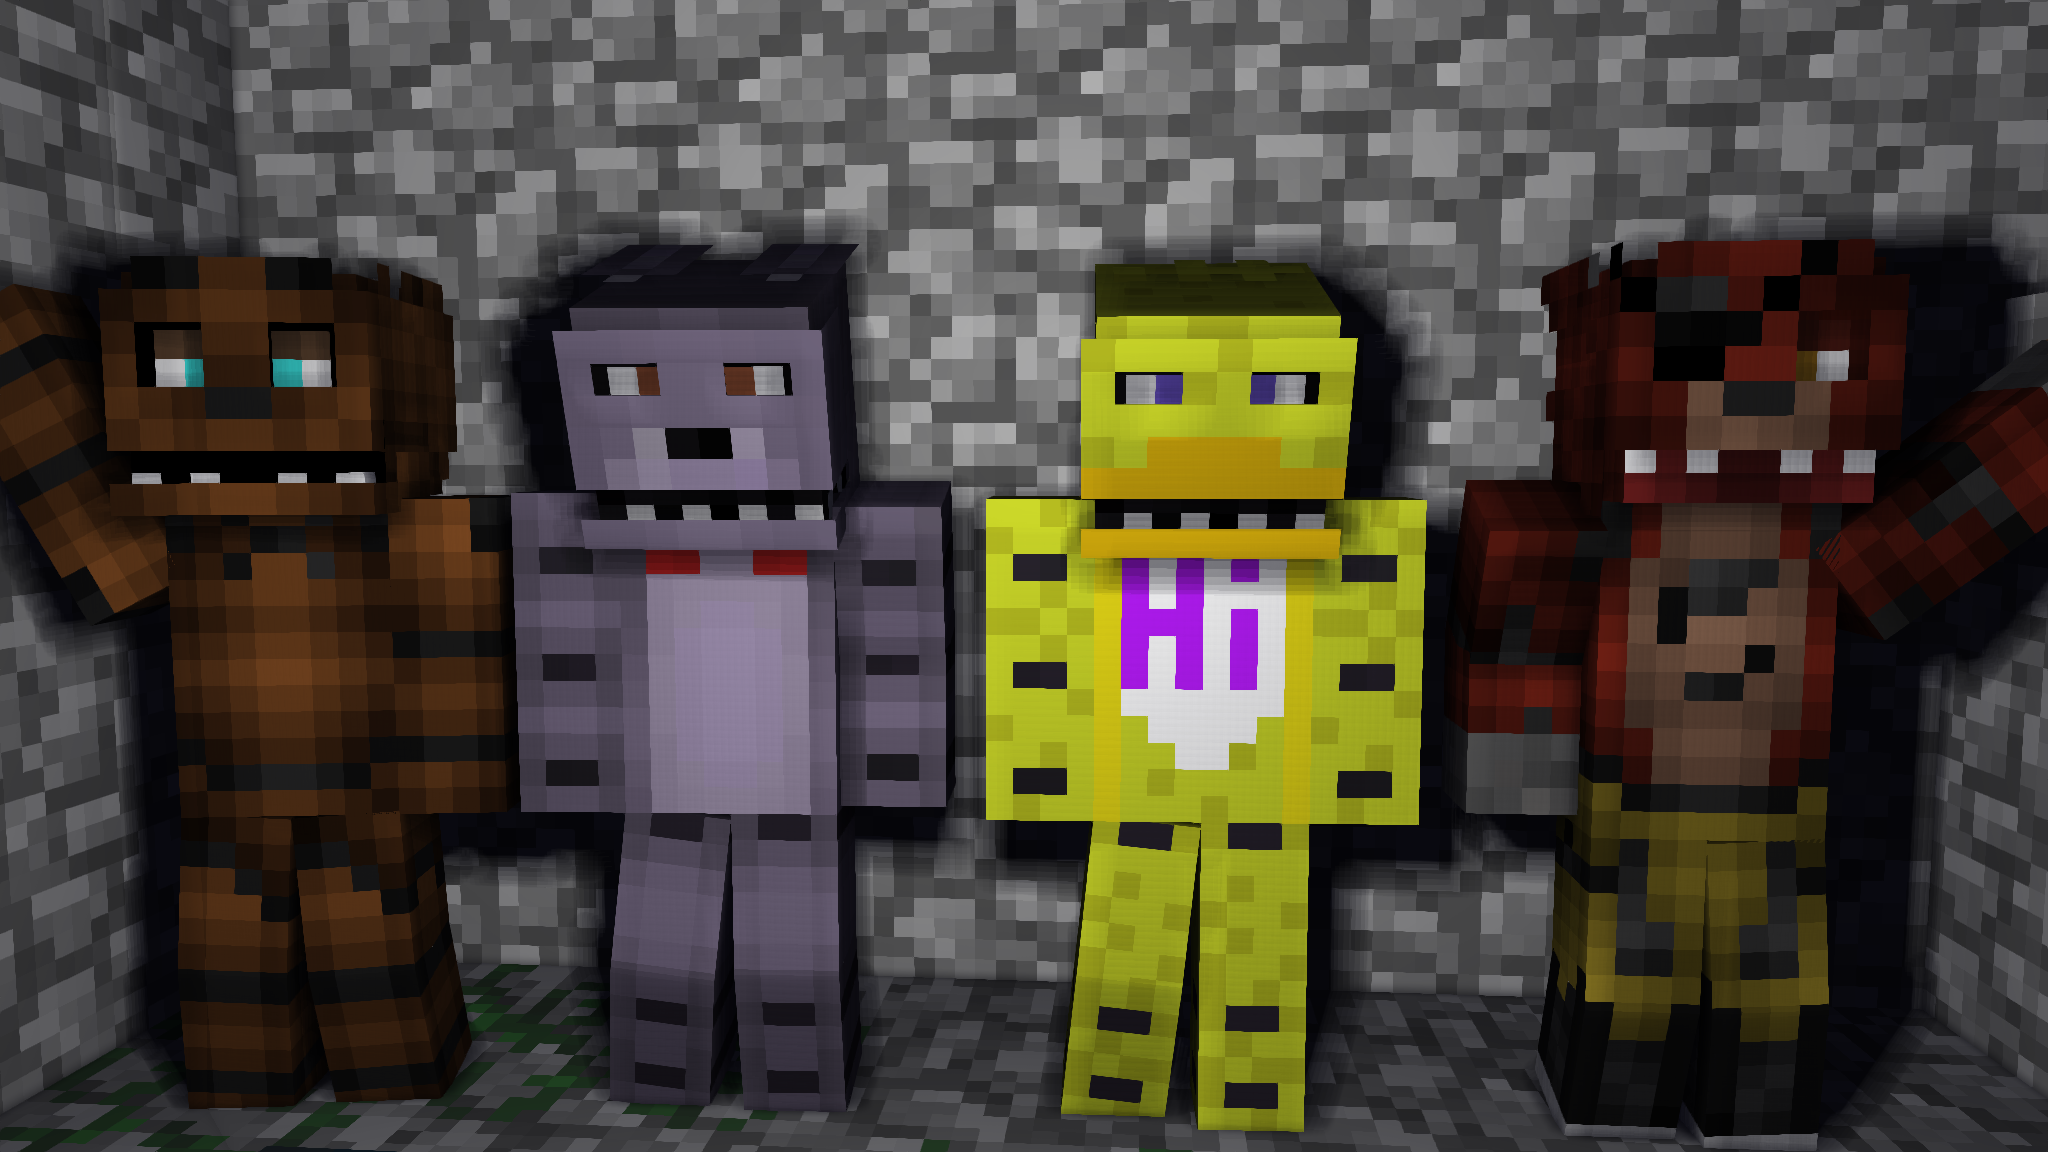 Minecraft Five Nights at Freddy's! by MrEdPicWorld on DeviantArt